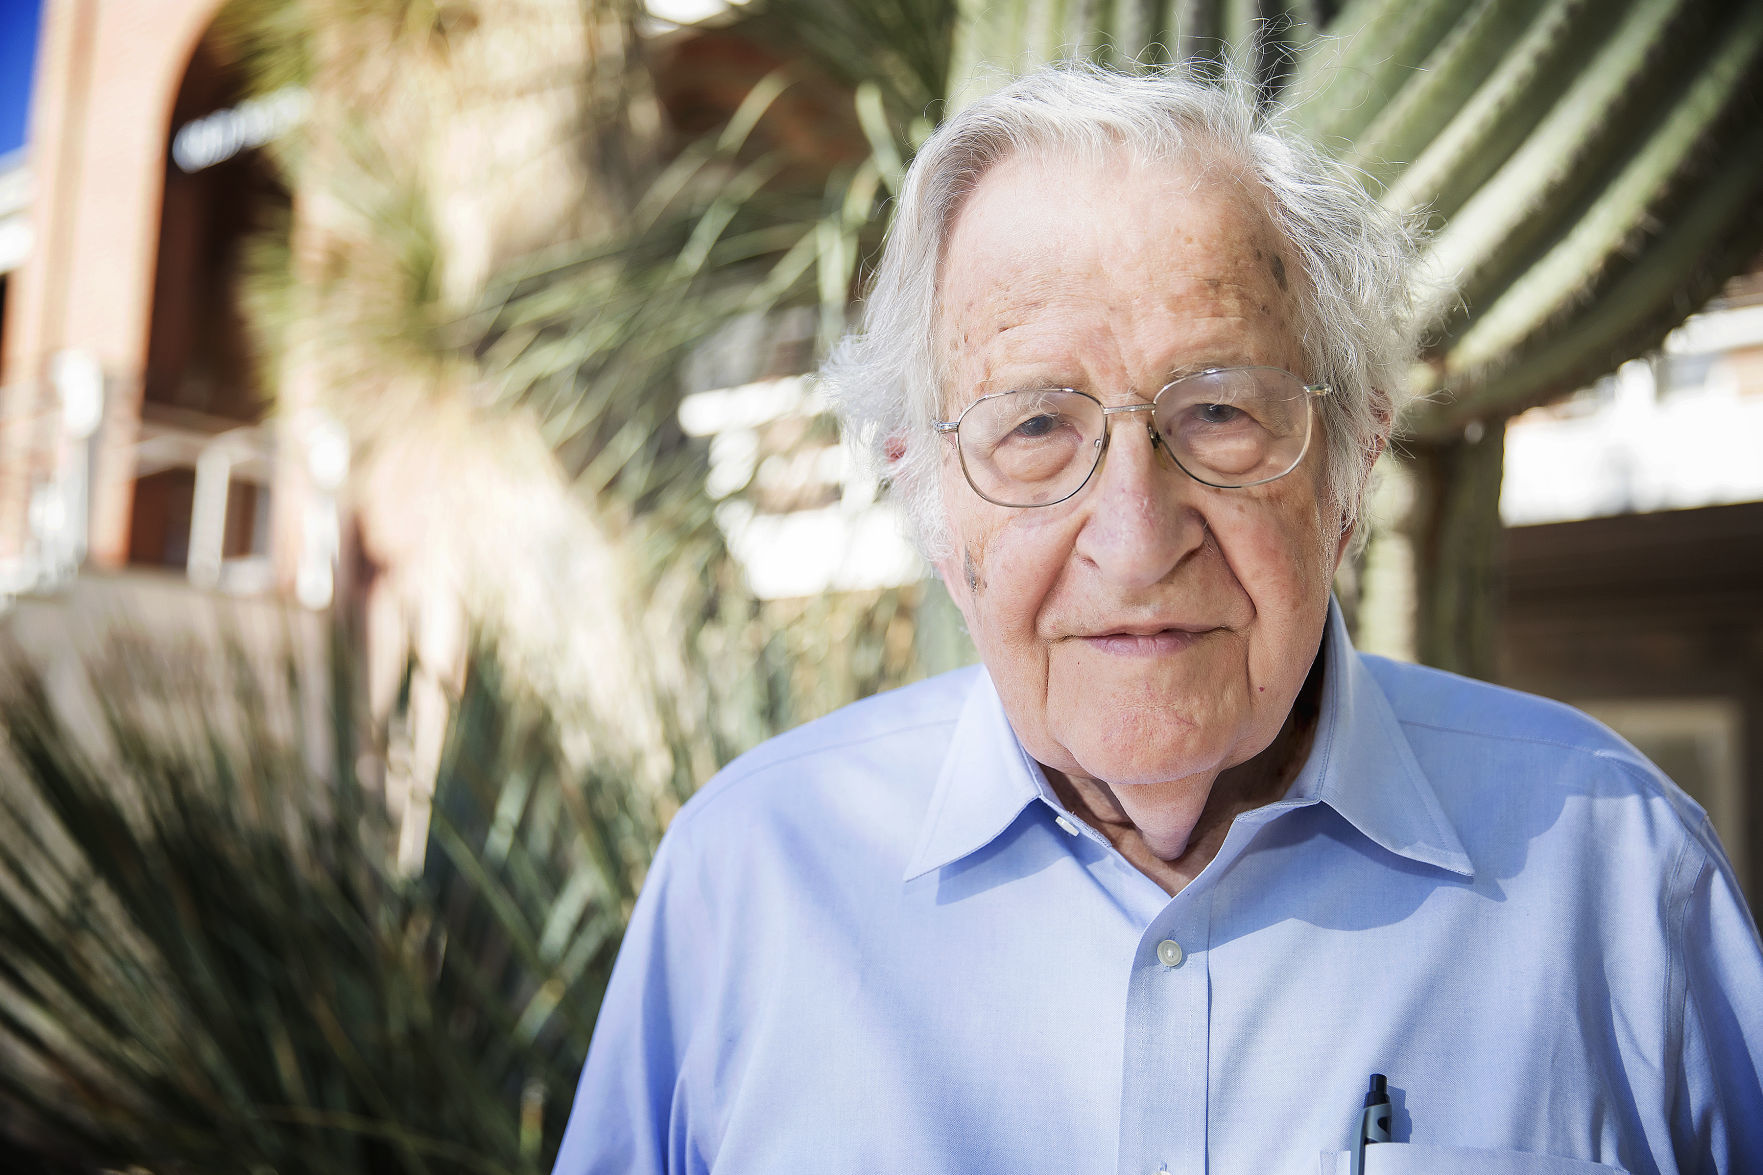 Steller column: The outrage! Chomsky makes how much at UA?! | Tucson.com